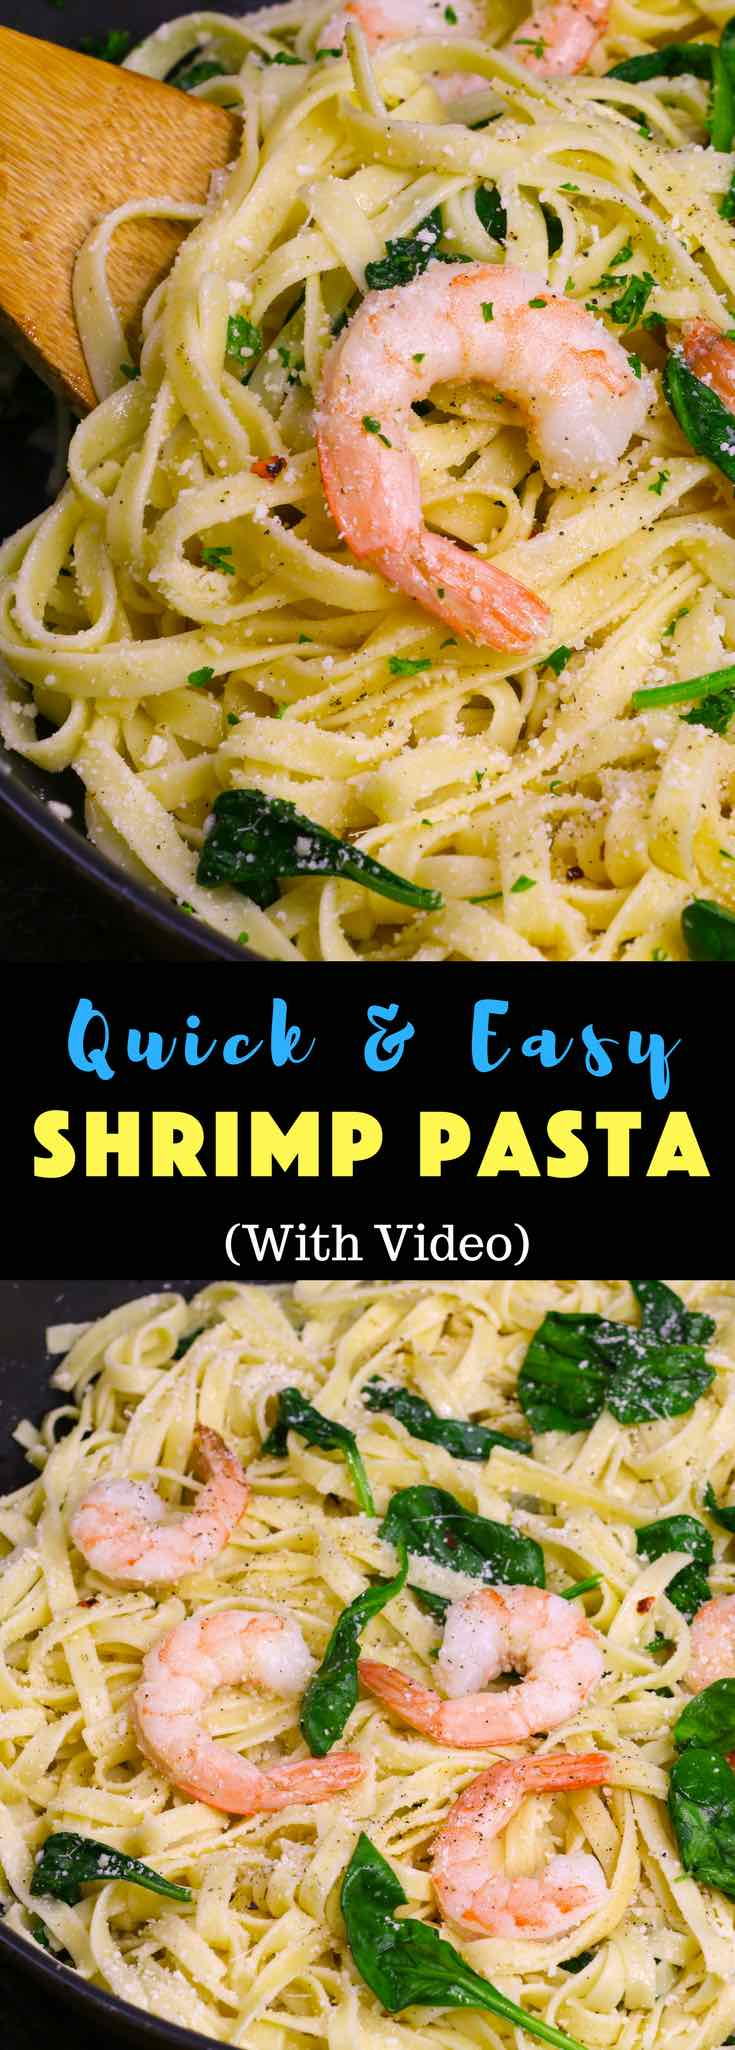 This Garlic Butter Shrimp Pasta is a simple and incredibly delicious one pot meal you can make in under 30 minutes. It's a quick and easy dish that's restaurant quality. Plus recipe video tutorial! #ShrimpPasta